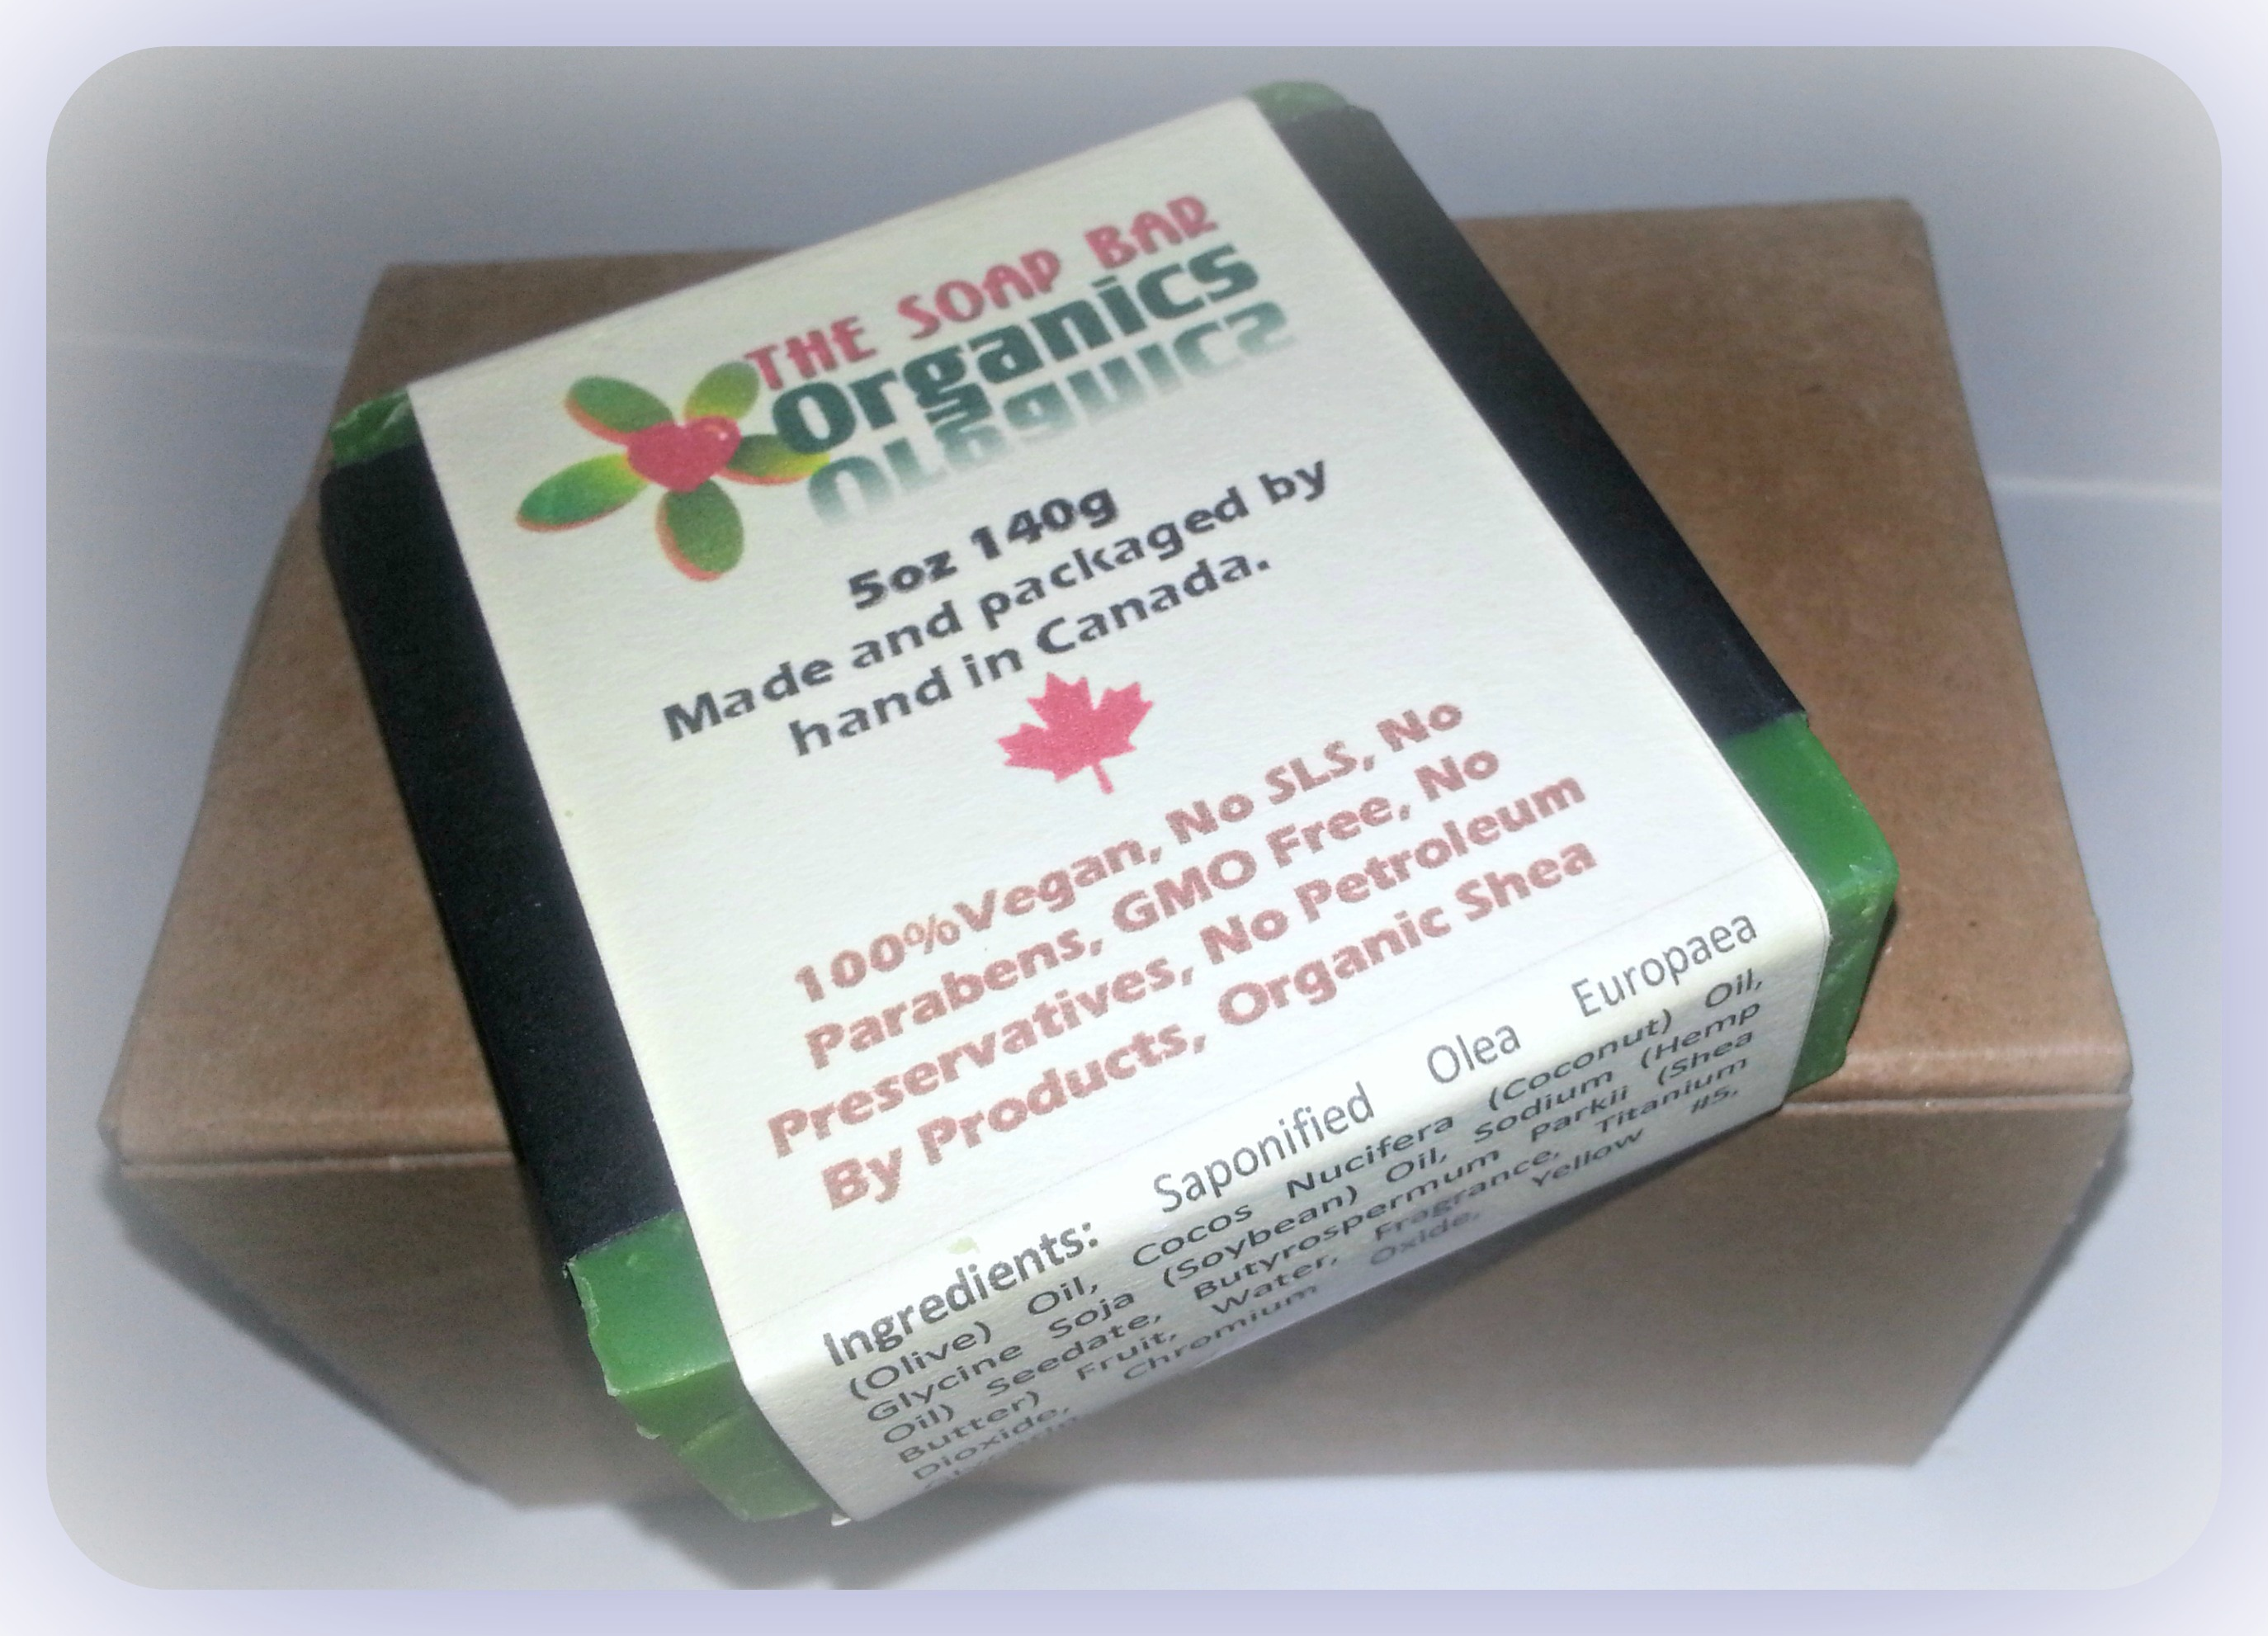 The Soap Bar Organics® – Skinlicious Soaps™ Ltd